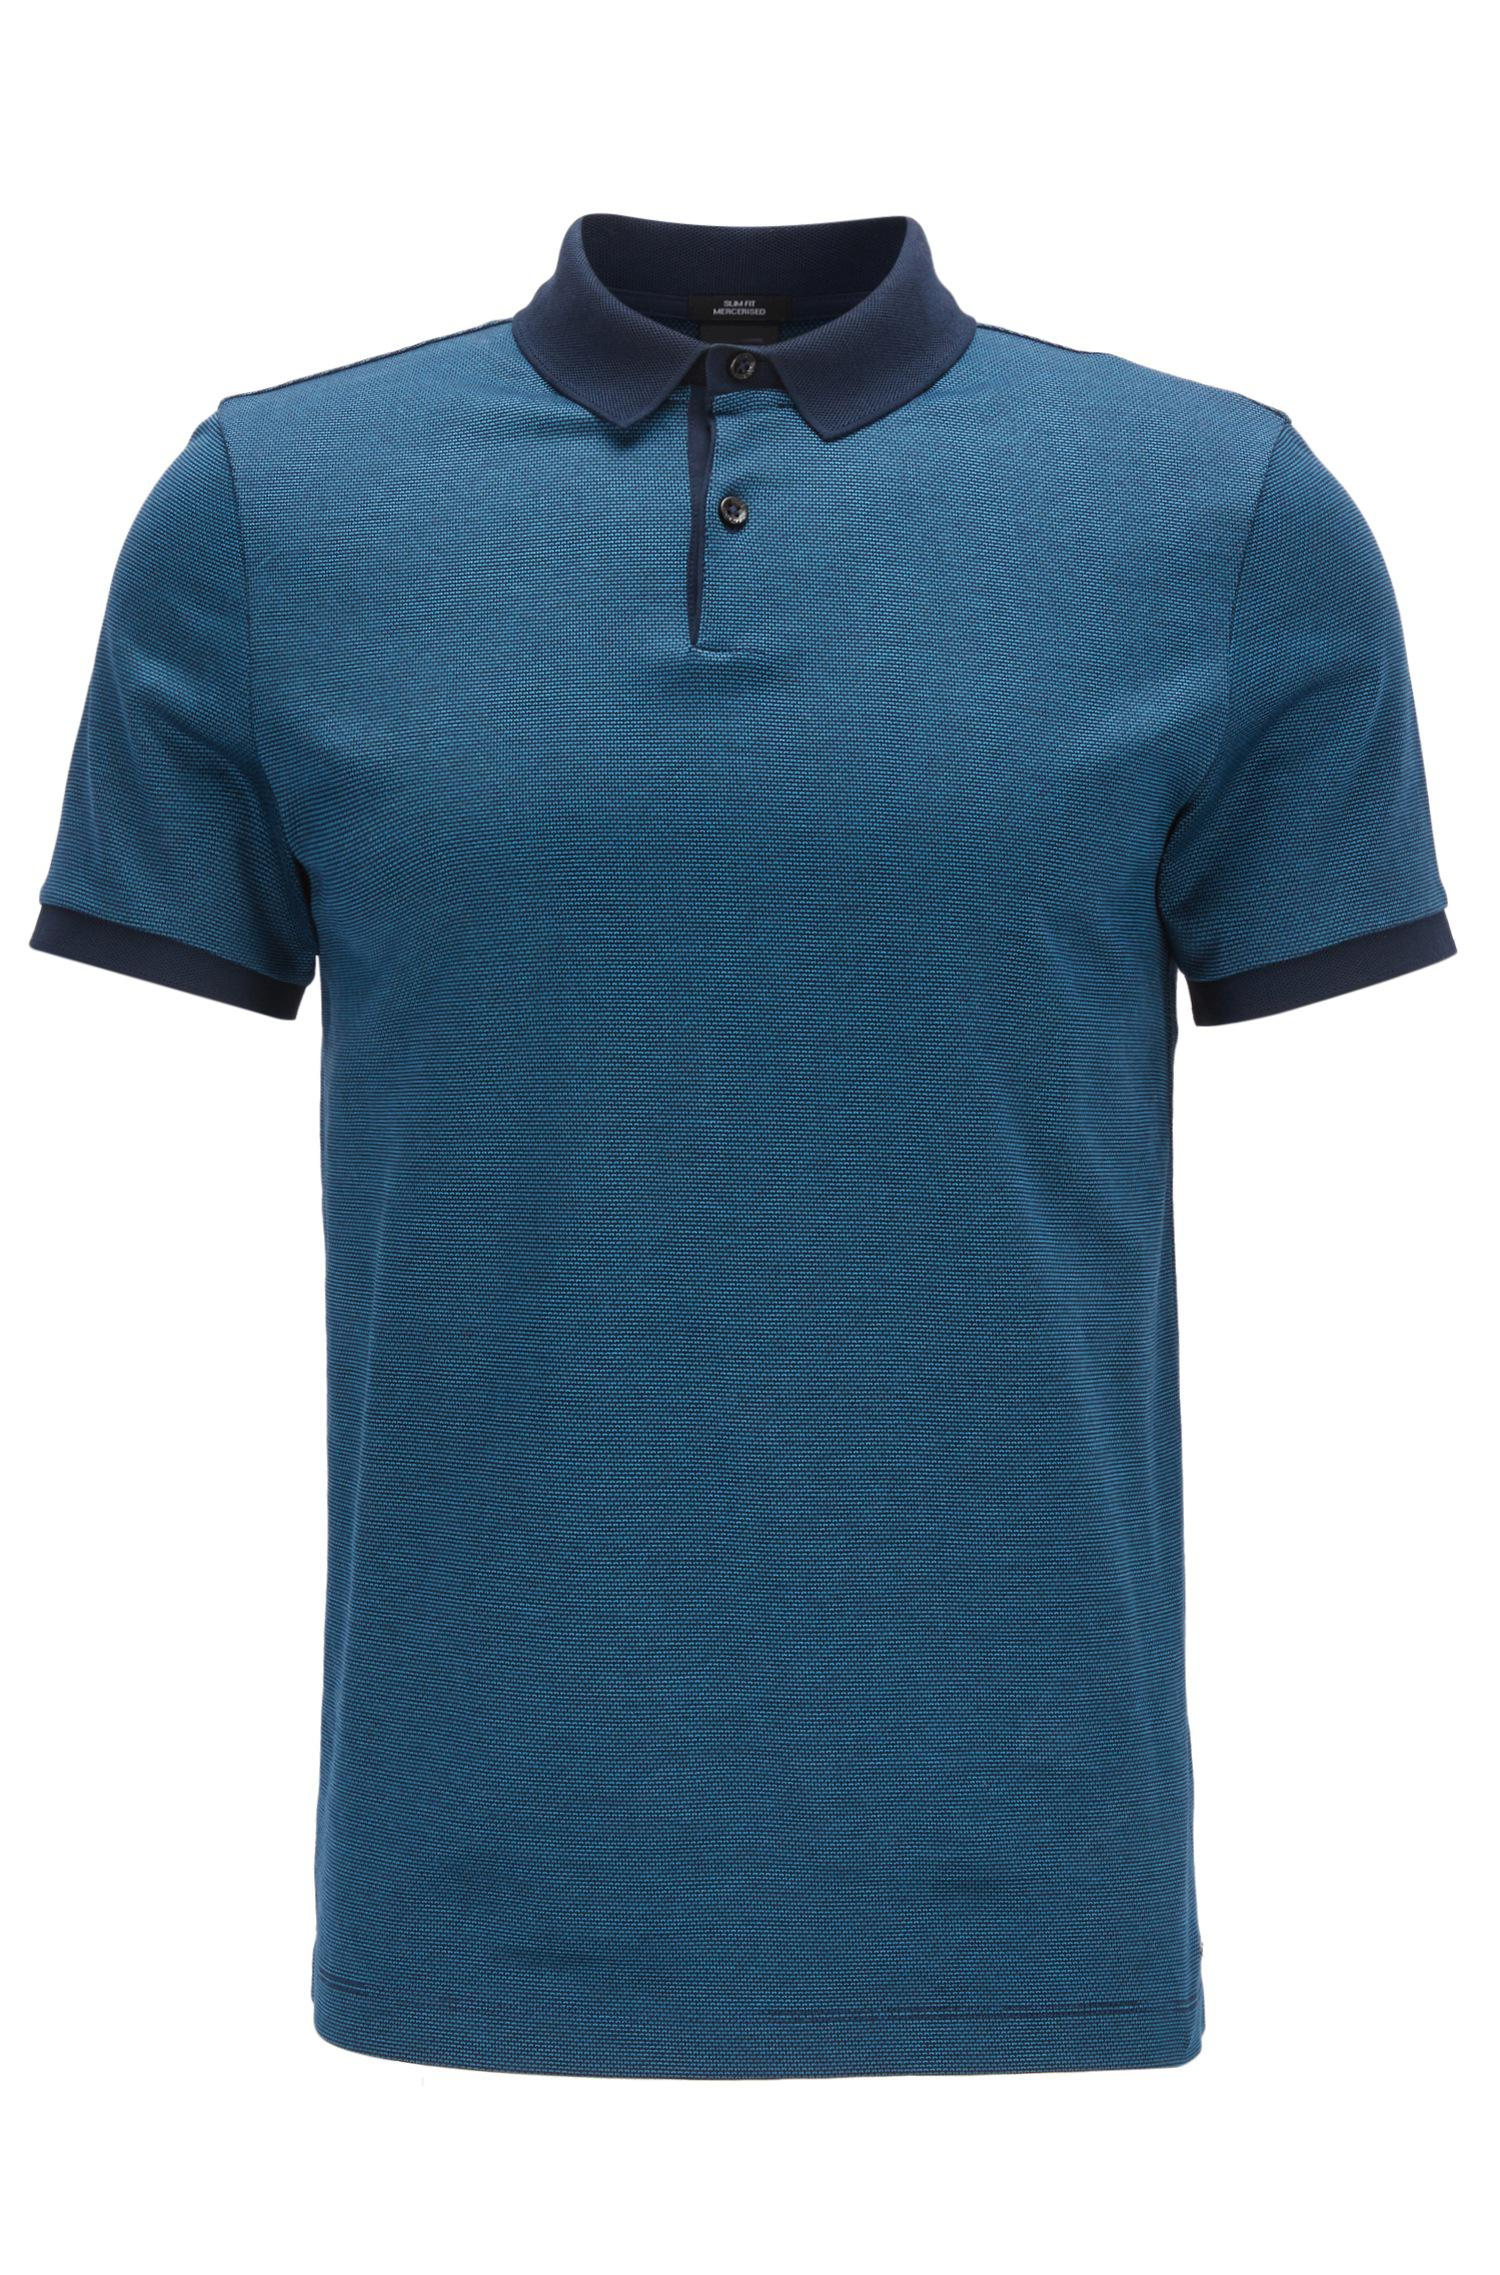 Boss Slim Fit Polo Shirt In Mercerised Cotton Jacquard In